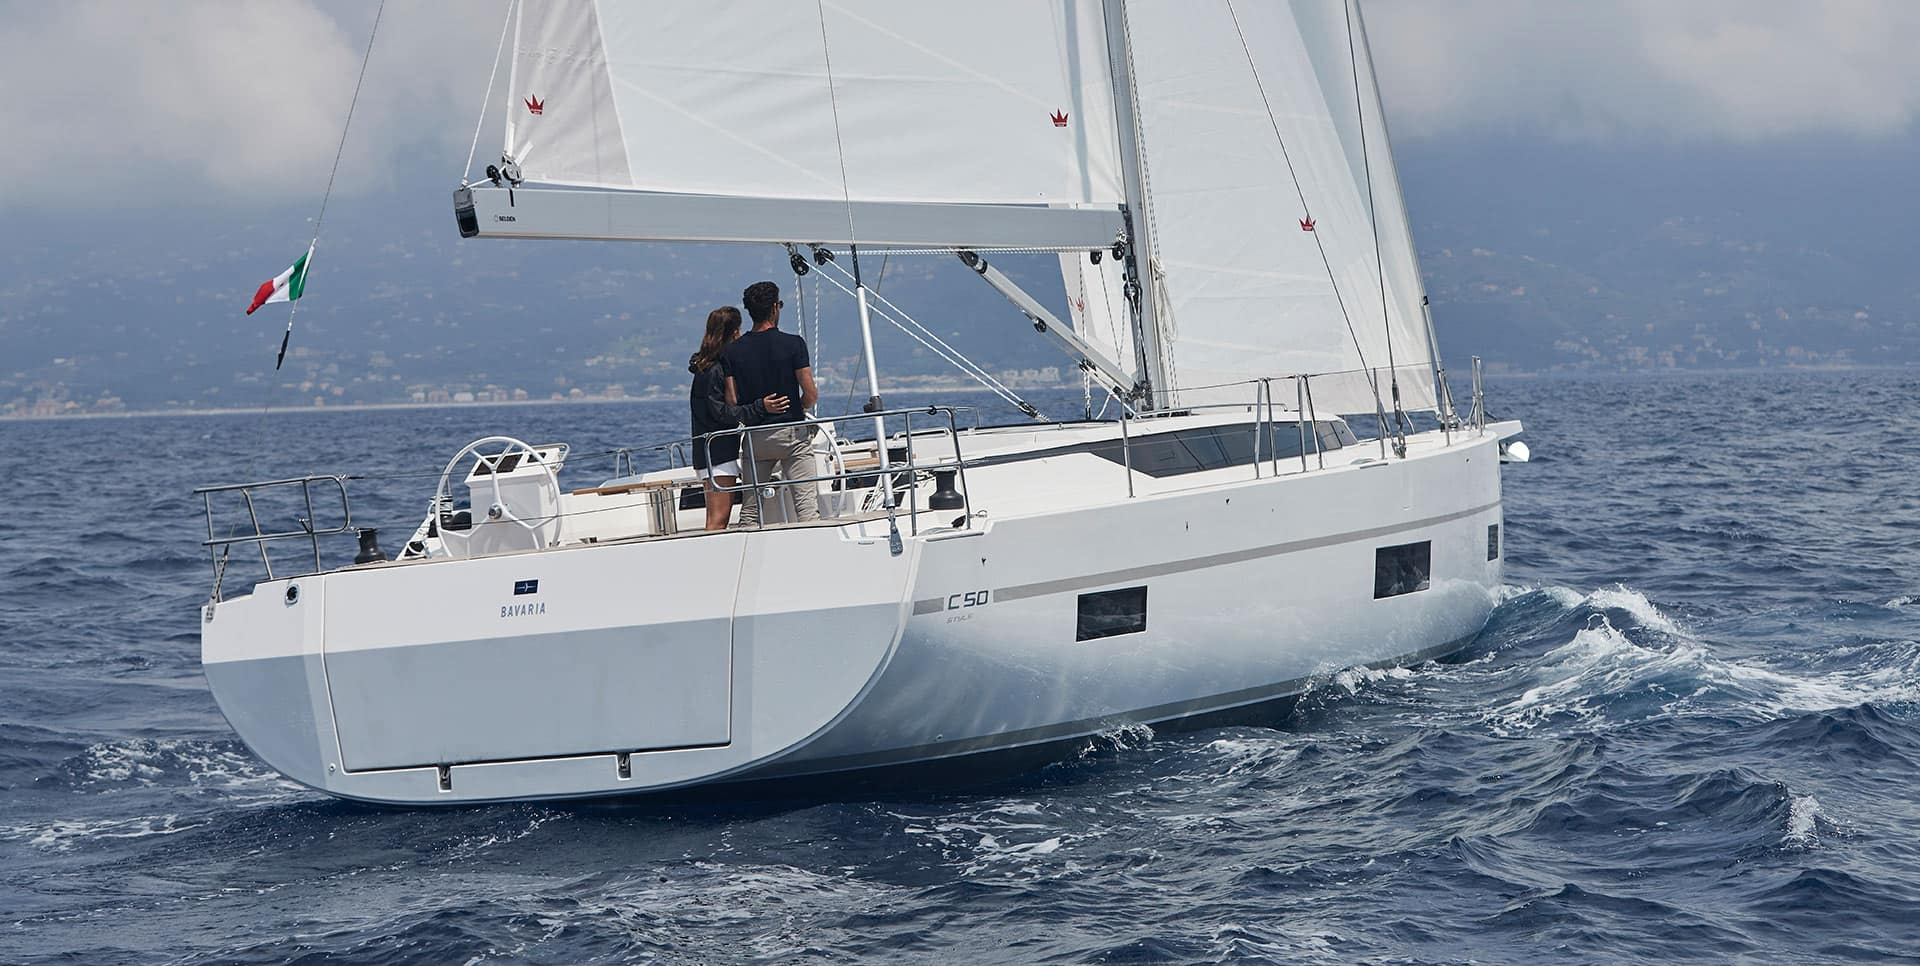 Bavaria C50 Prestige - Sailing Yacht for Charter in Greece